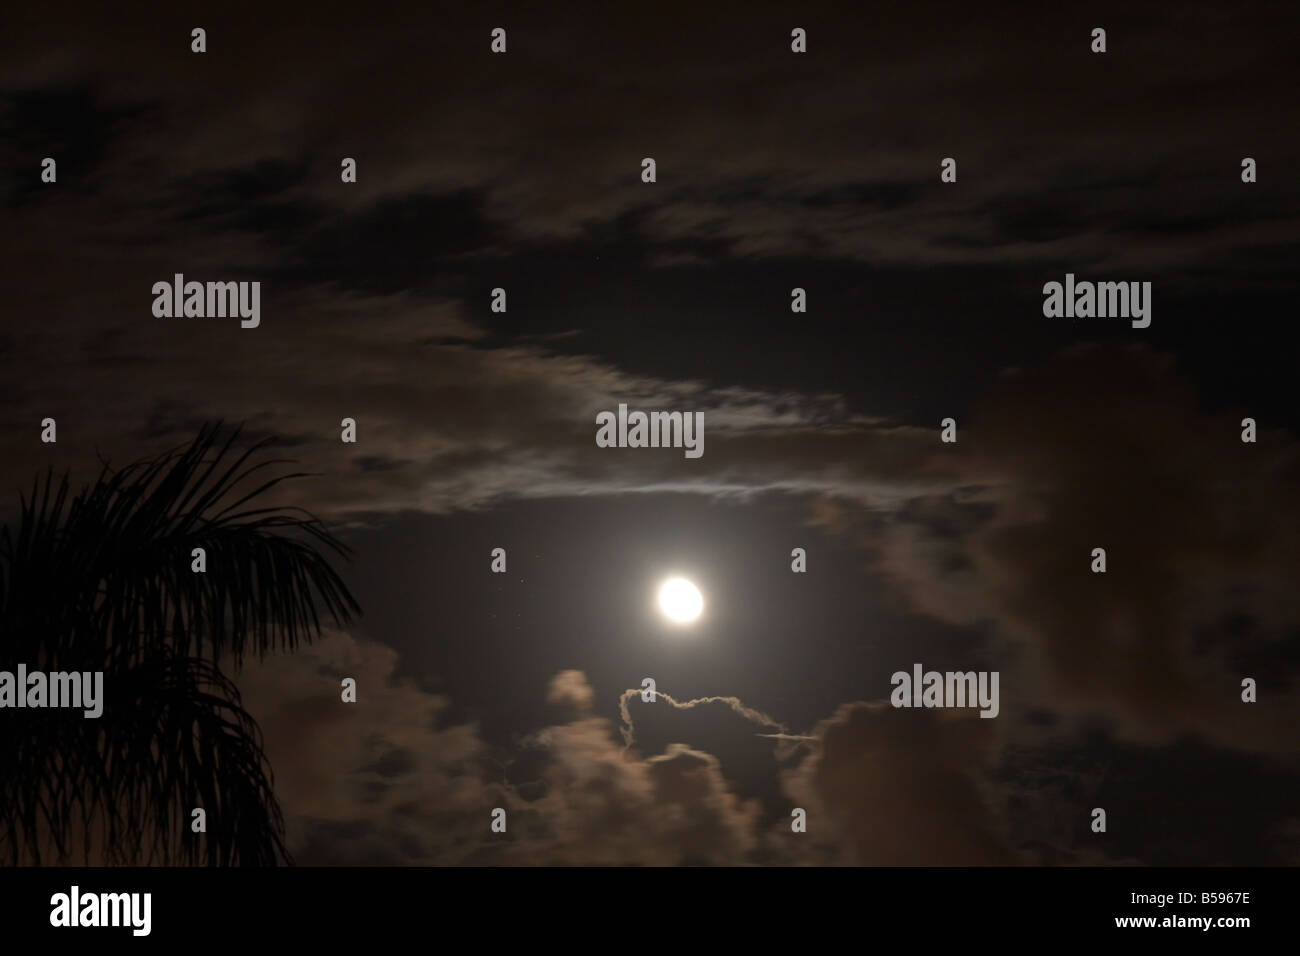 Full moon behind dark scudding clouds at night with palm tree in Queensland QLD Australia - Stock Image